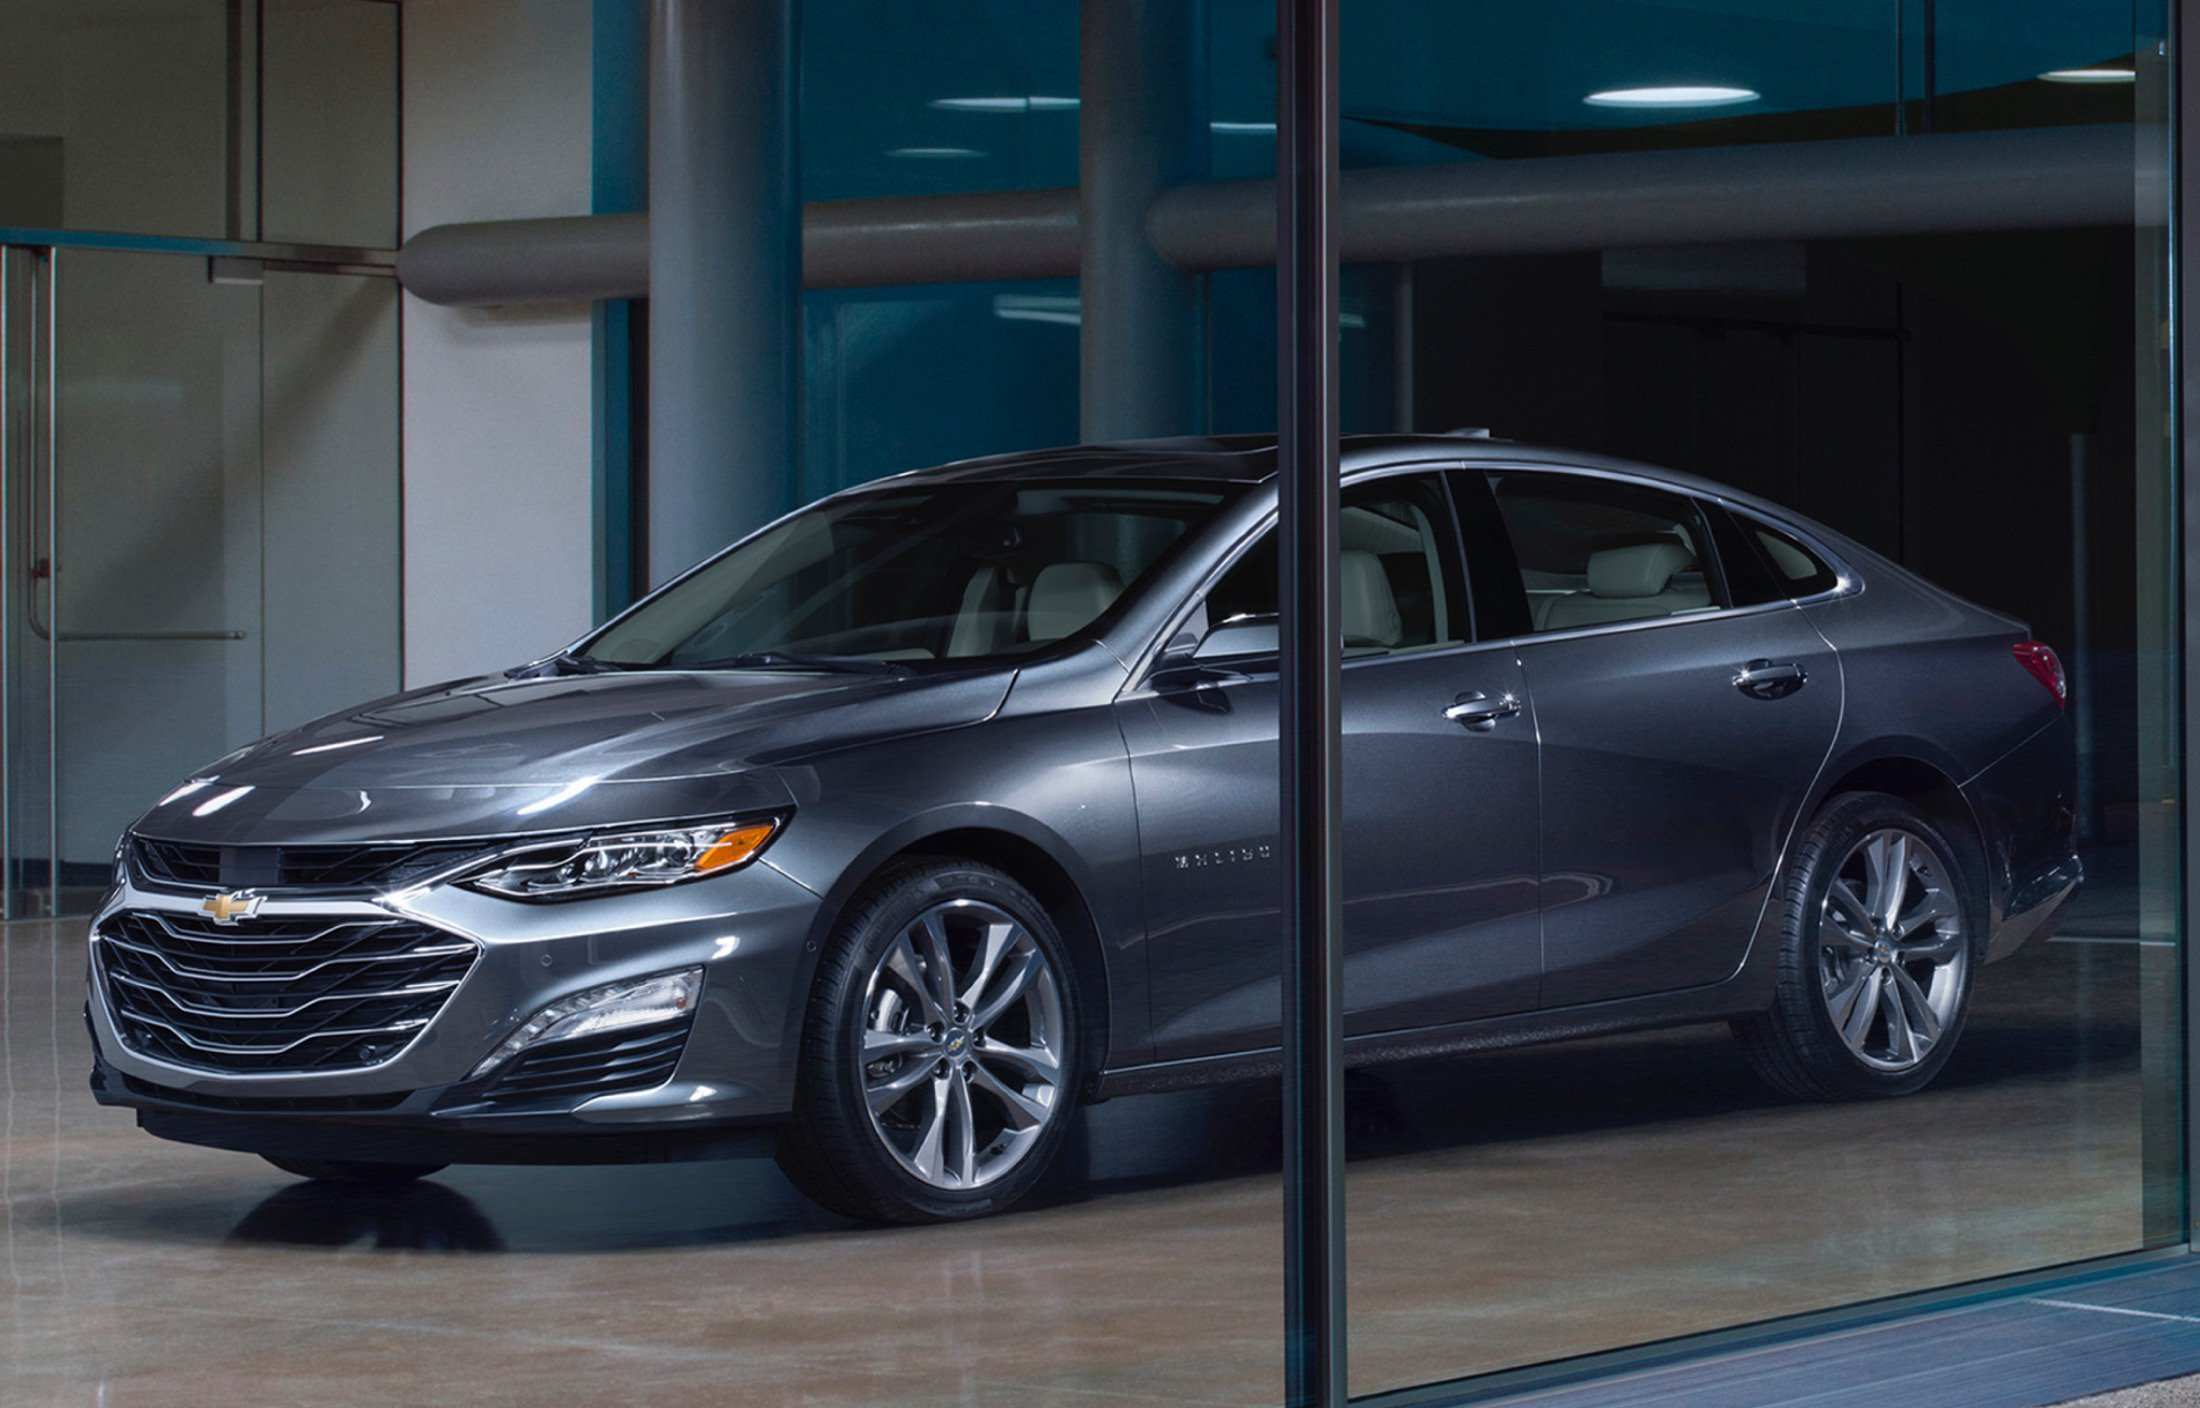 76 Great The Chevrolet Malibu 2019 Price Rumors Model for The Chevrolet Malibu 2019 Price Rumors